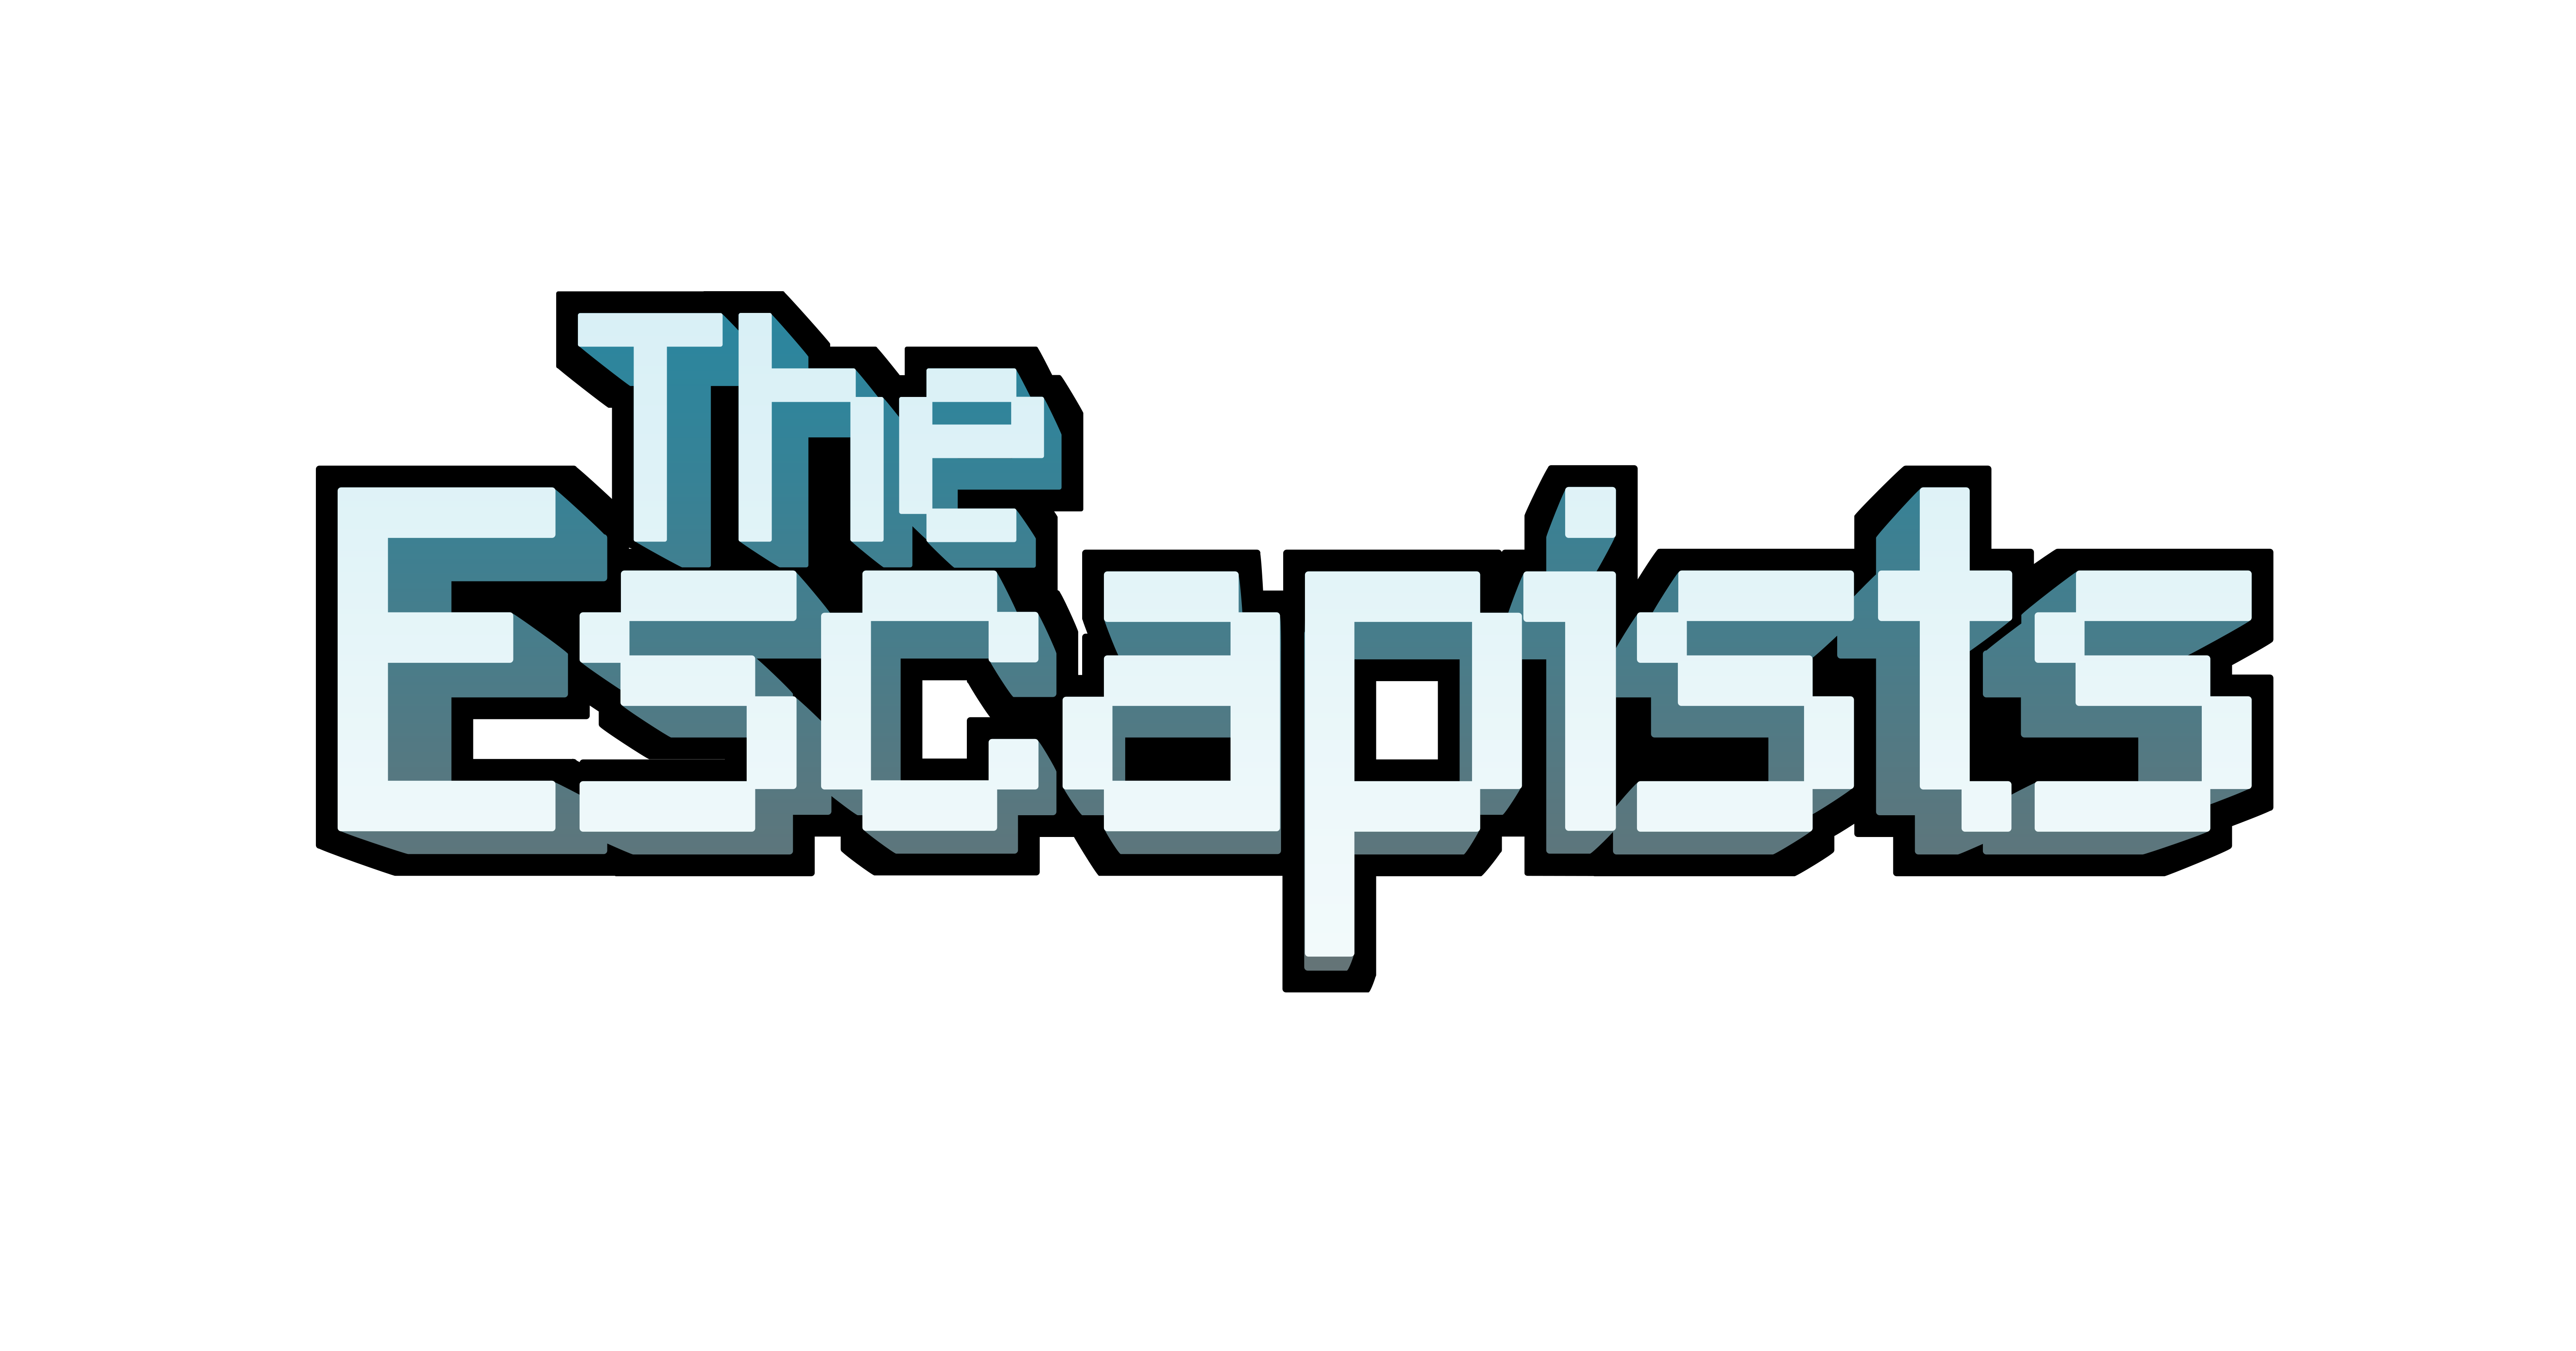 The Escapists game logo